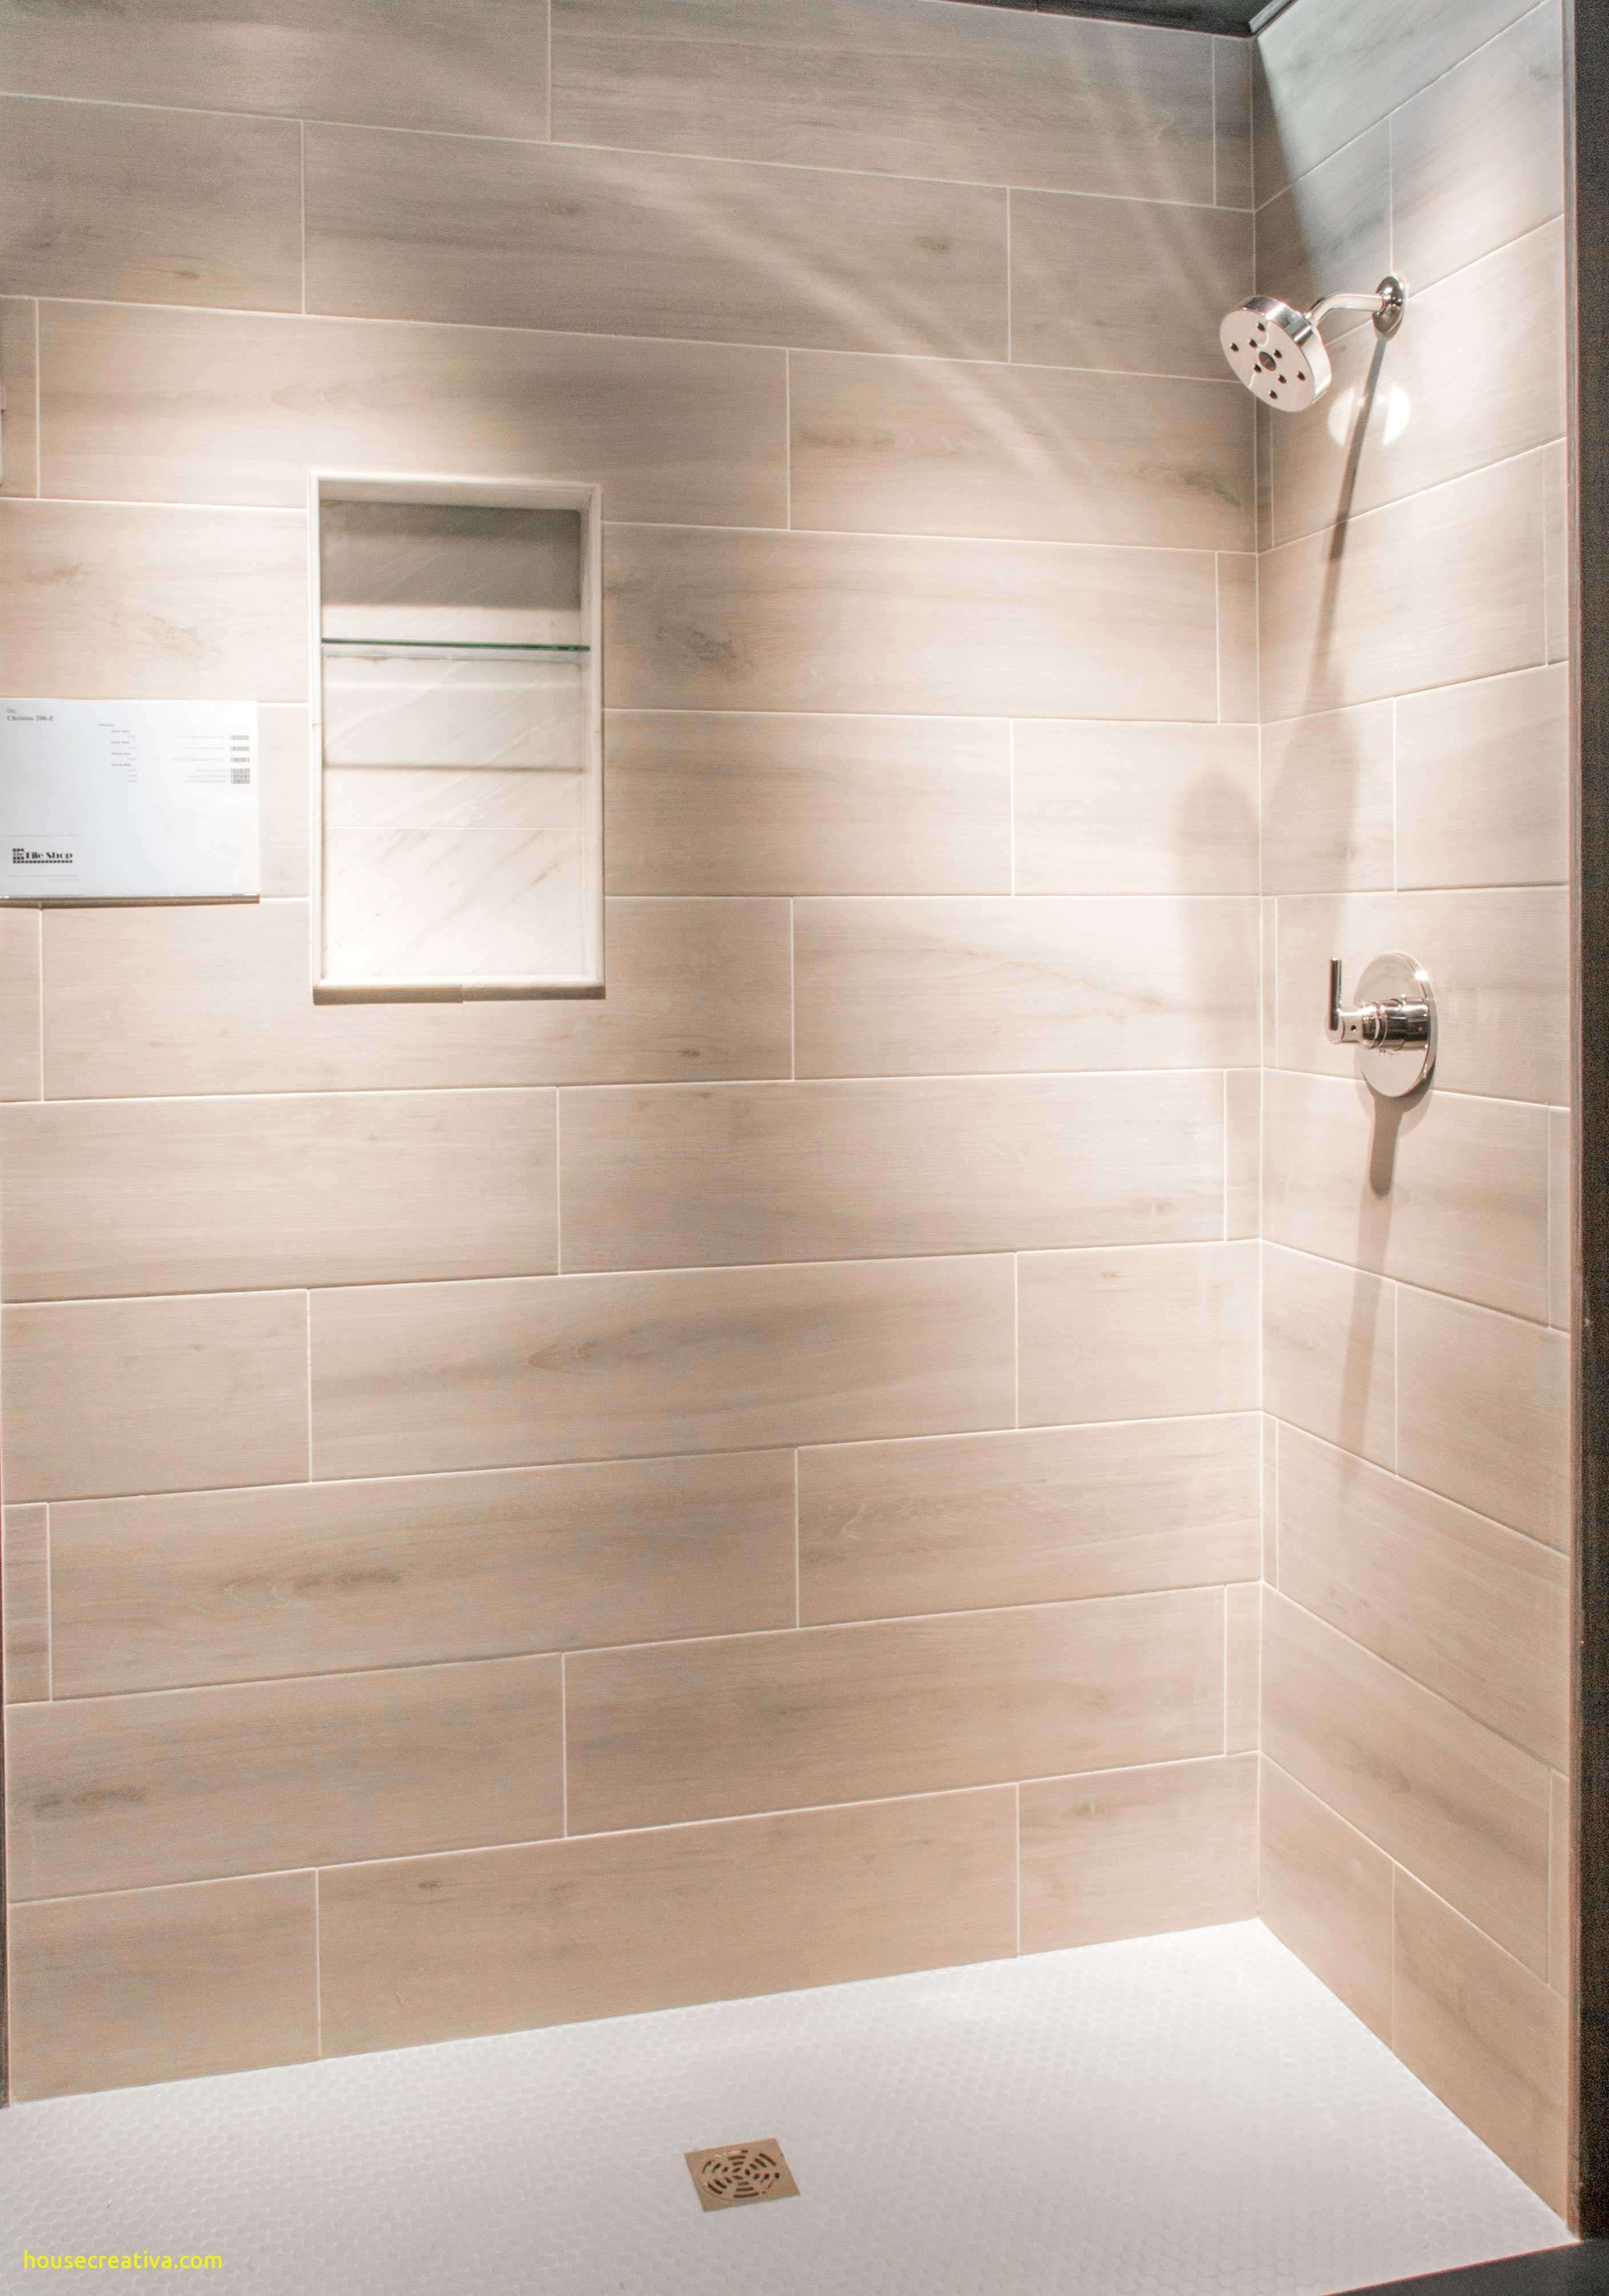 Lovely Type Of Tile For Shower Homedecoration Homedecorations